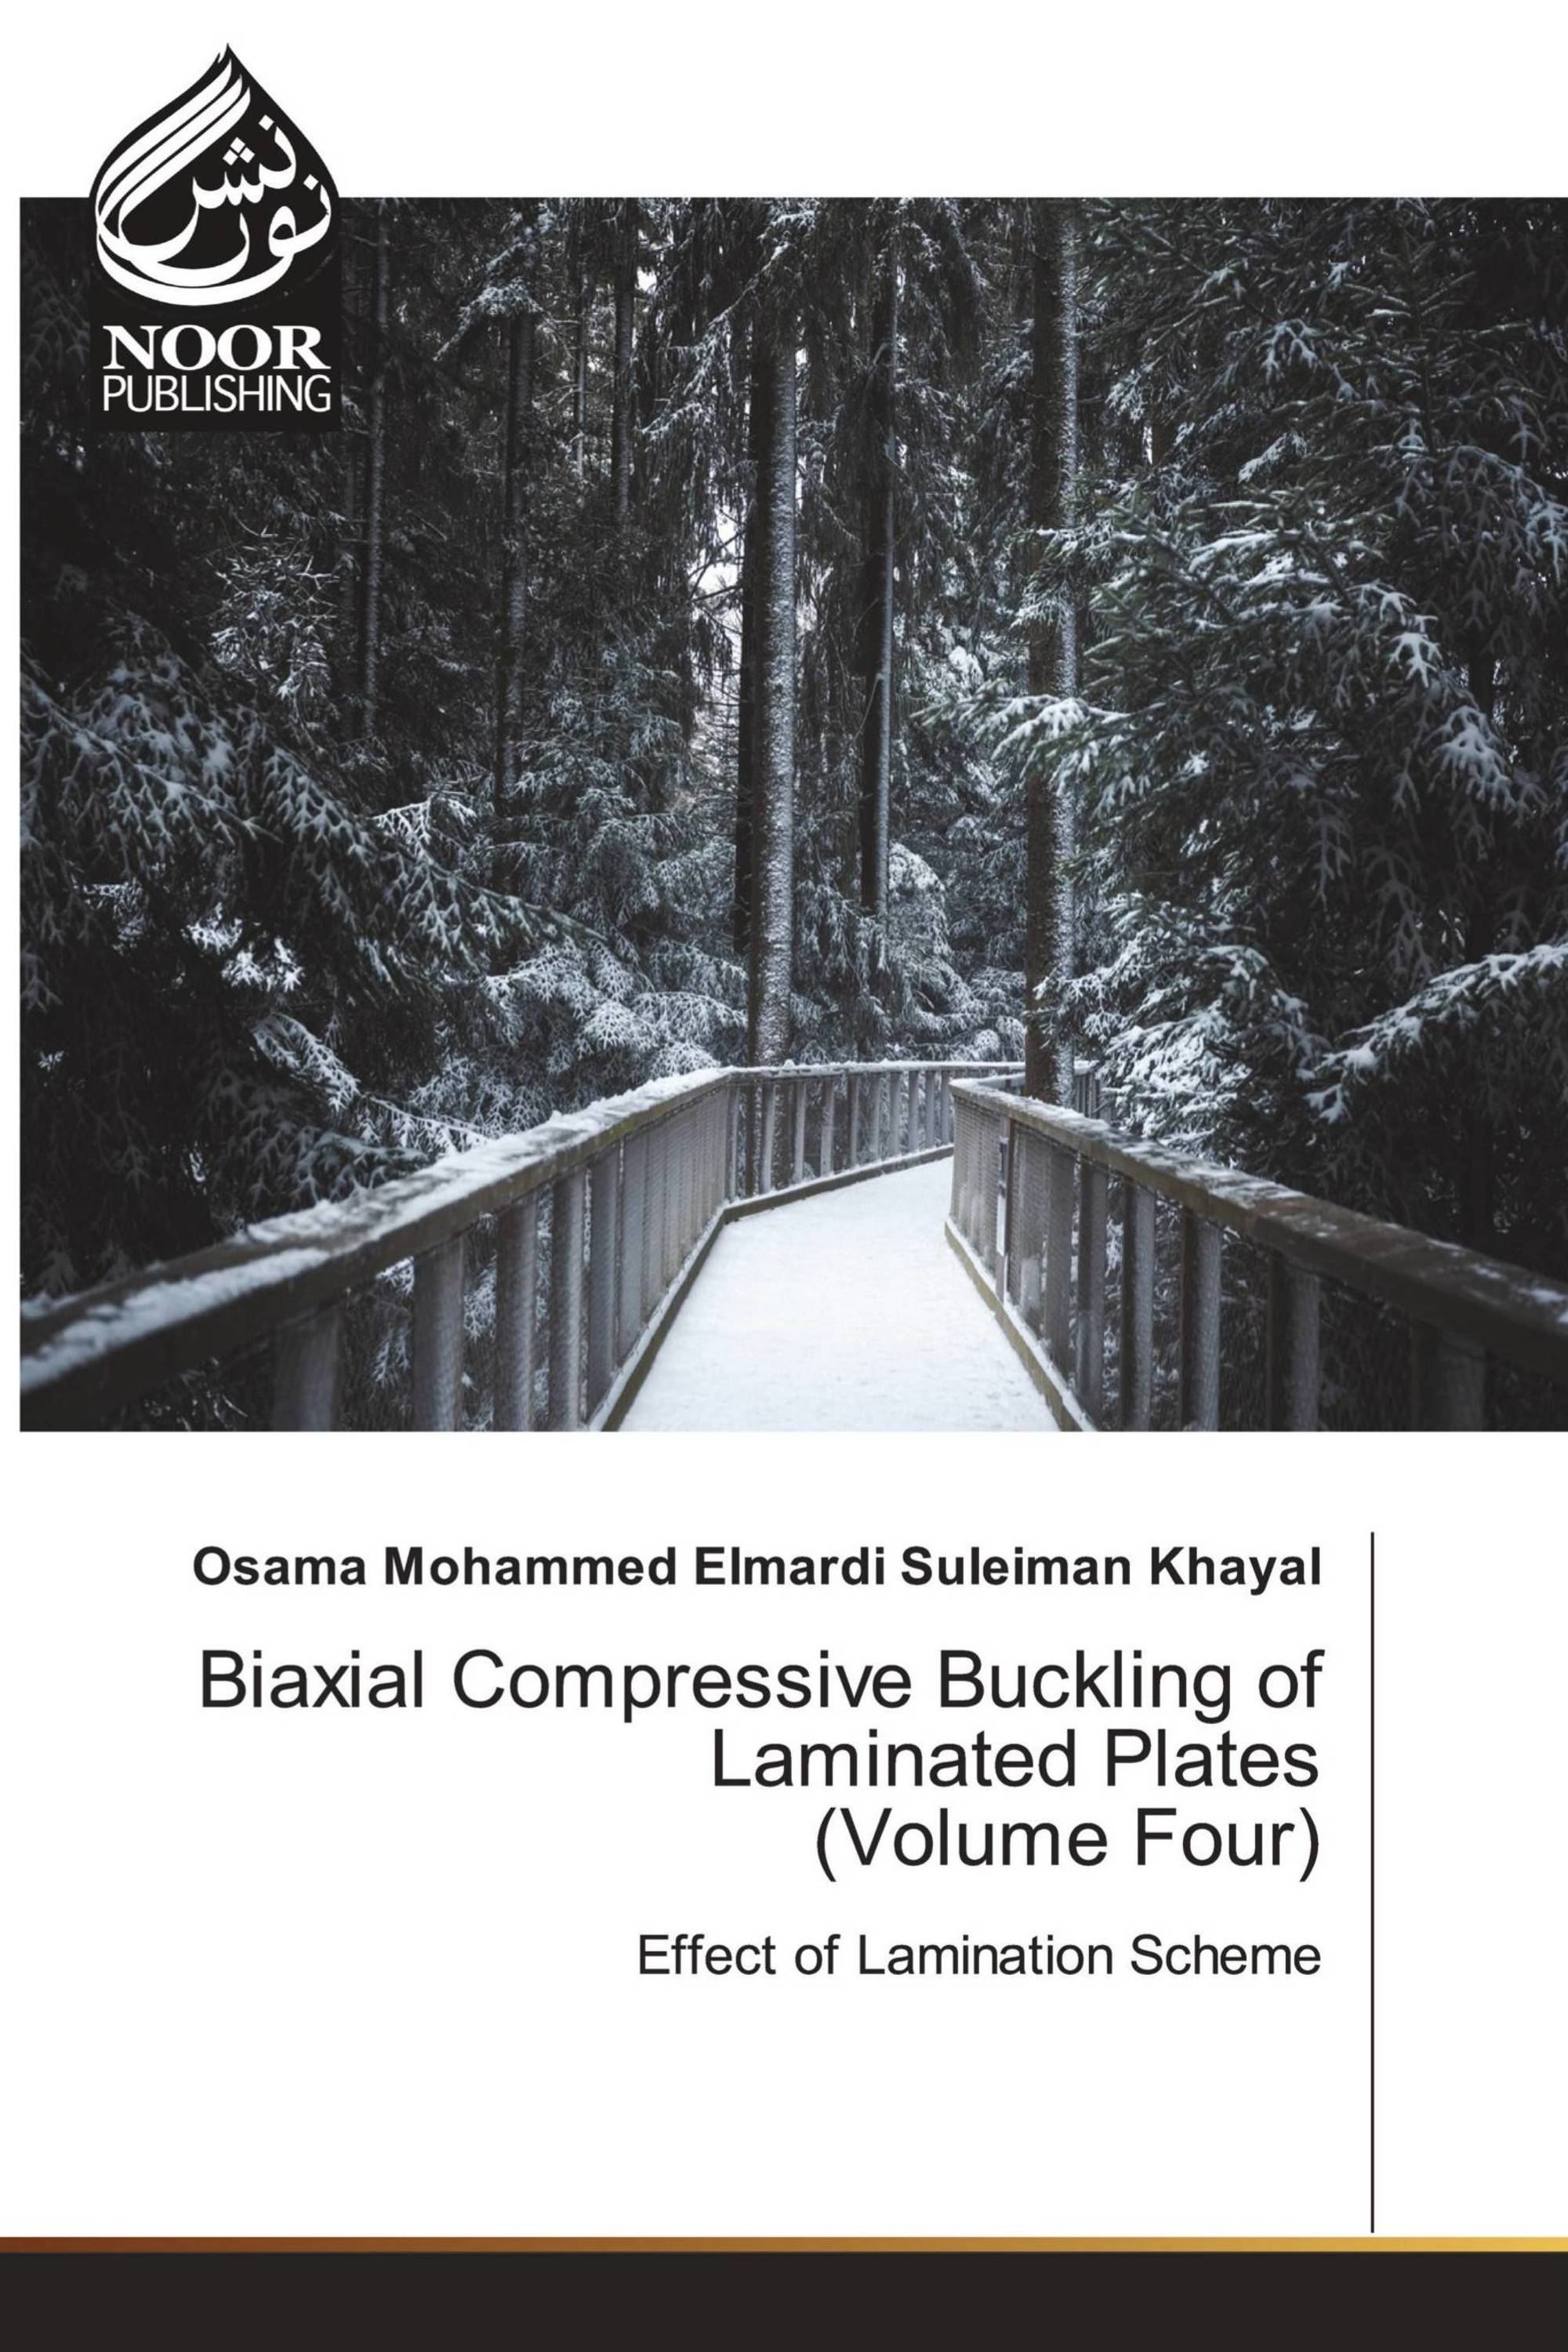 Biaxial Compressive Buckling of Laminated Plates (Volume Four)